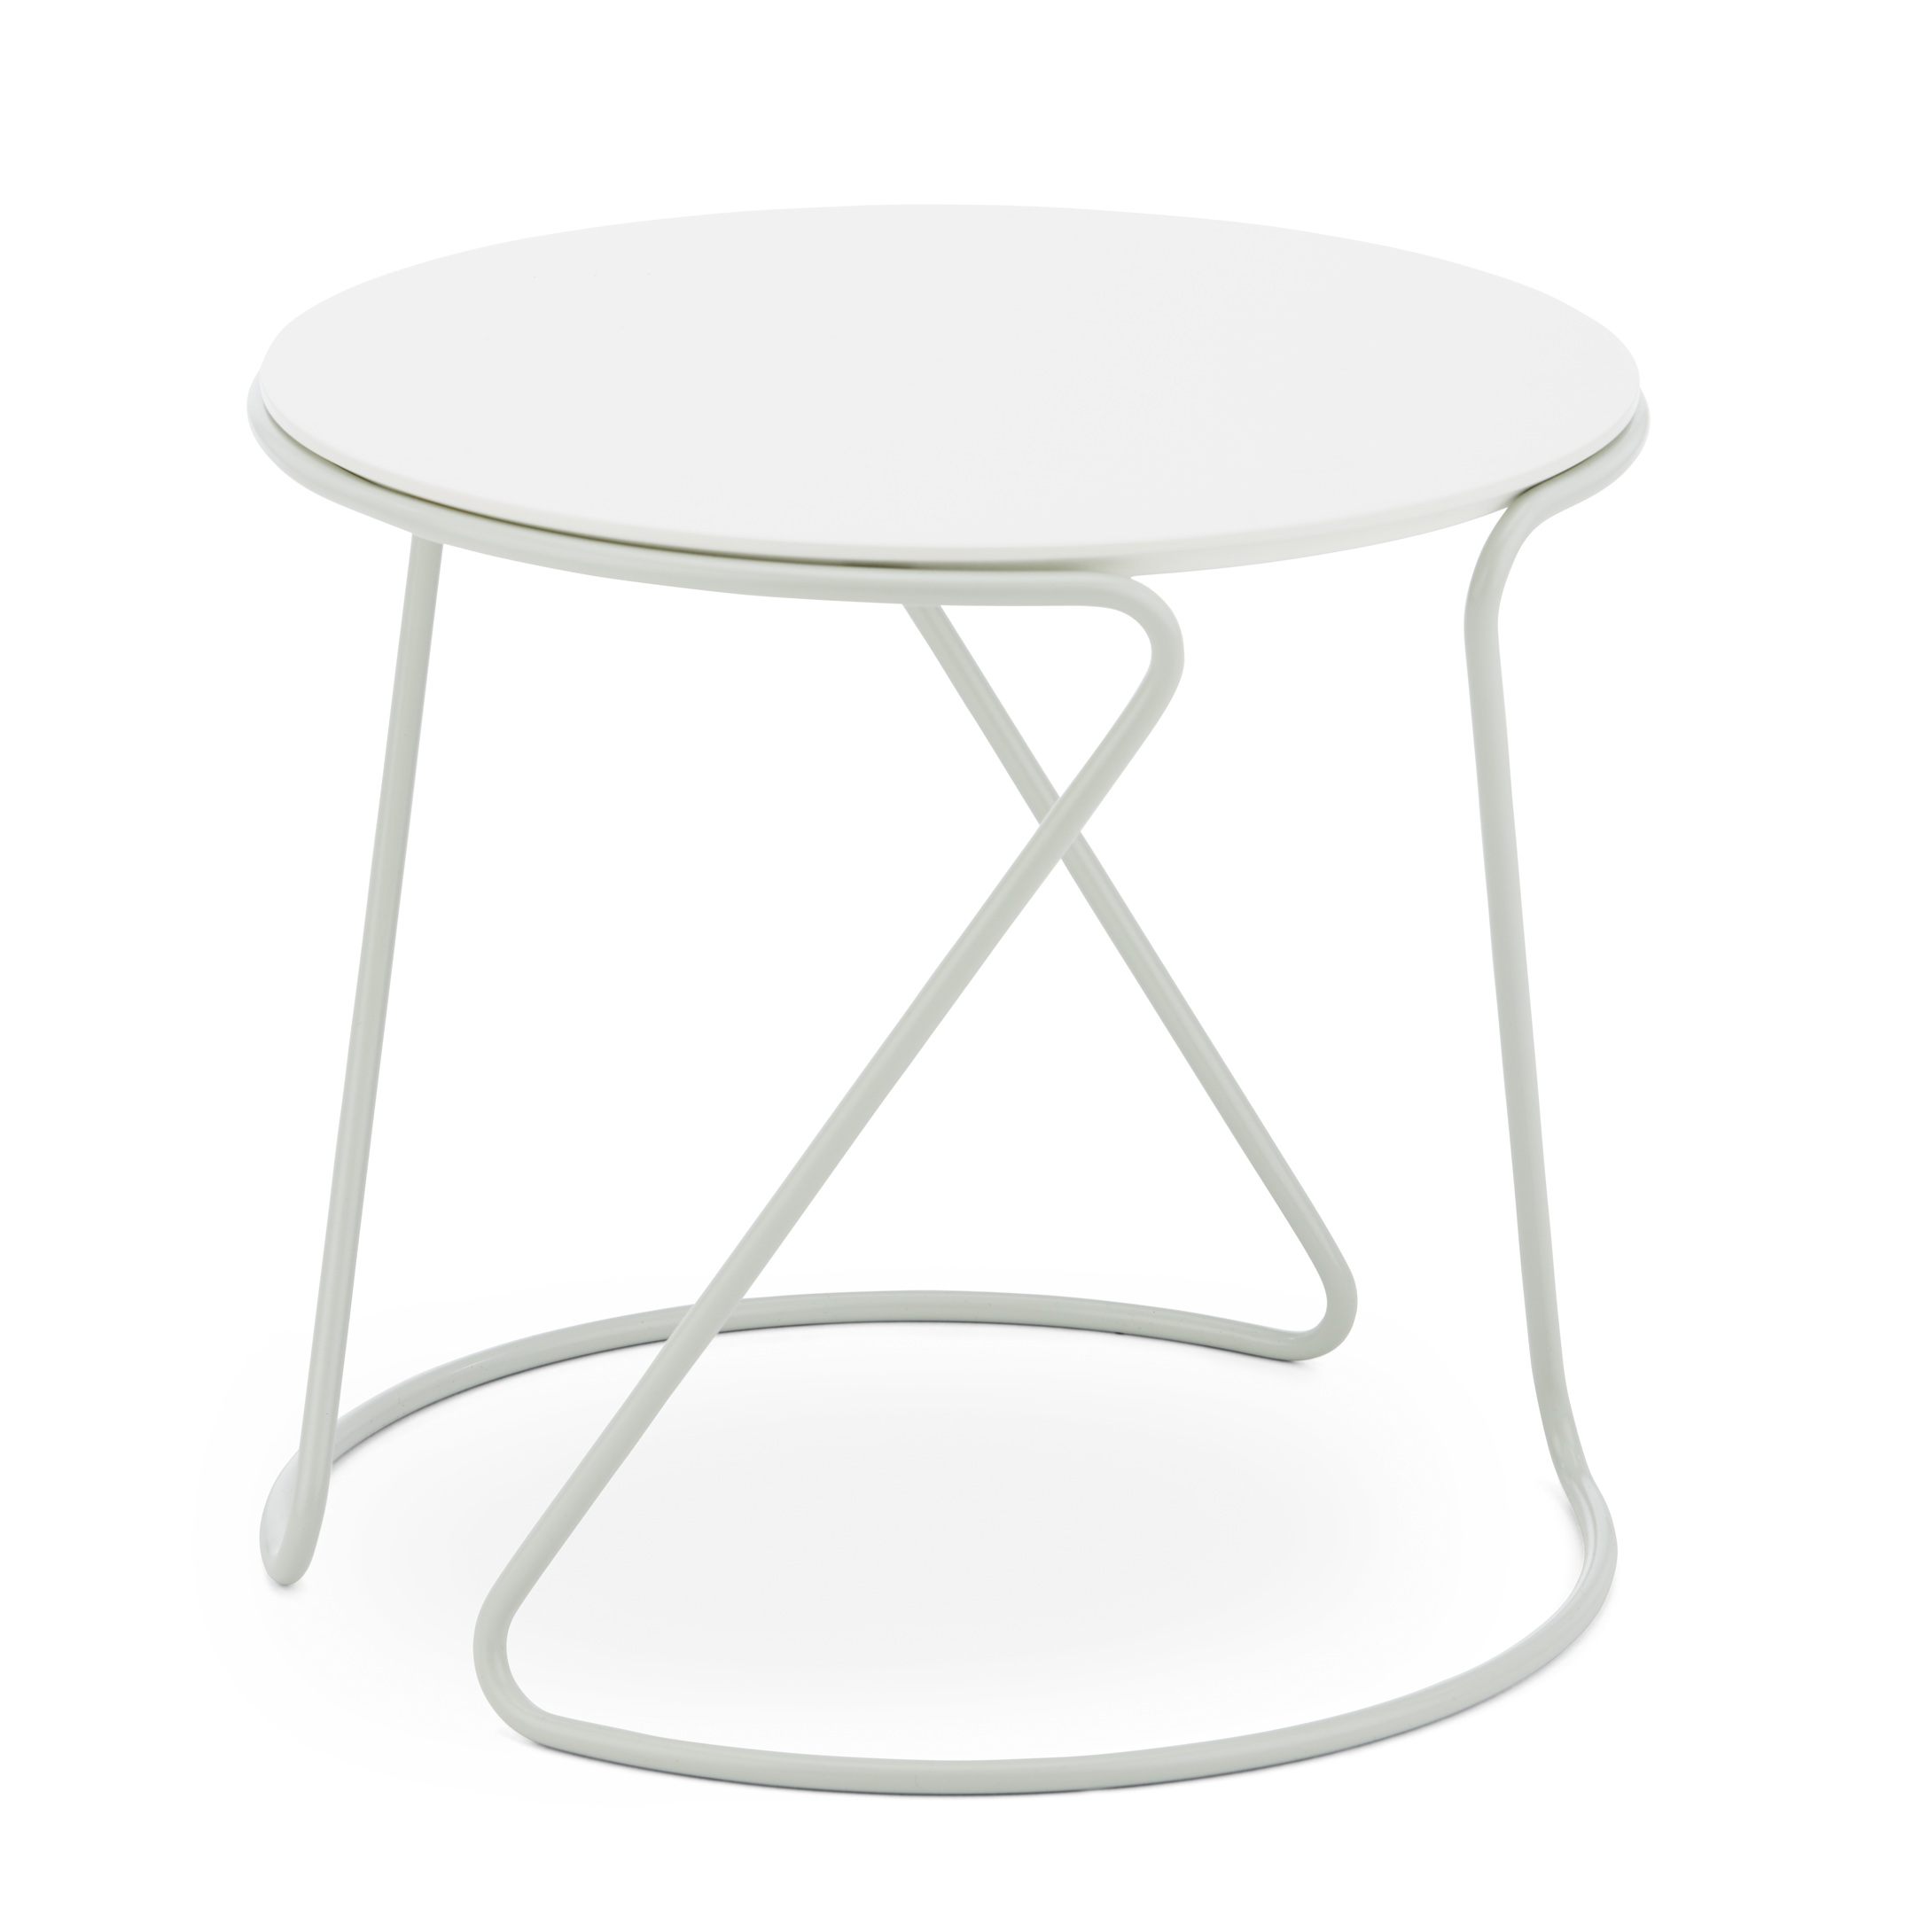 Support de table conception Thonet S 18 Uli Budde, Blanc